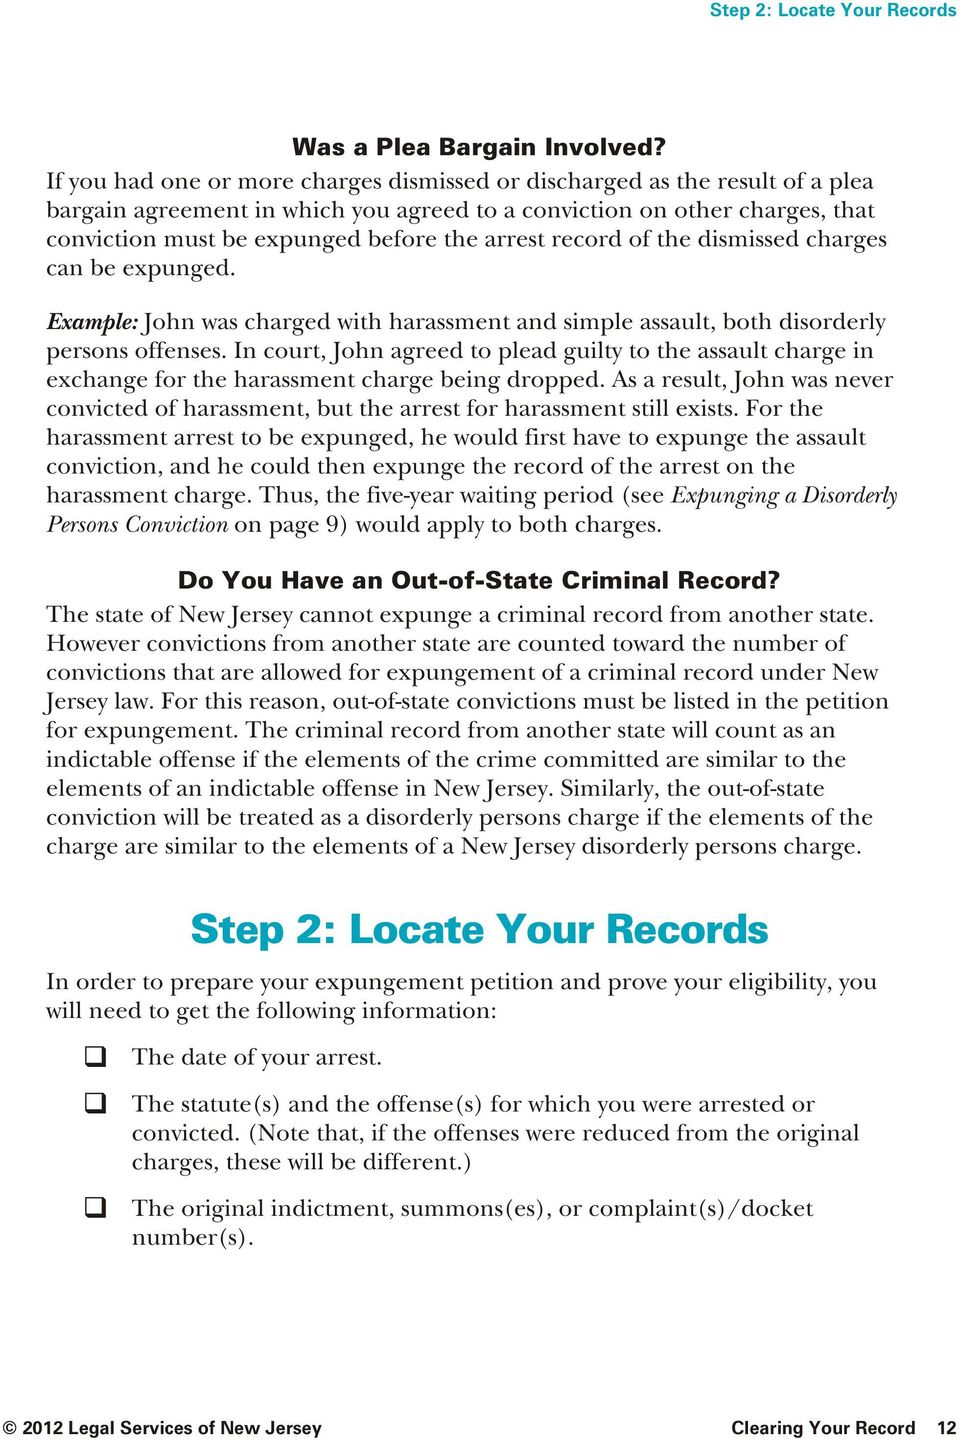 arrest record of the dismissed charges can be expunged. Example: John was charged with harass ment and simple assault, both disor derly persons offenses.